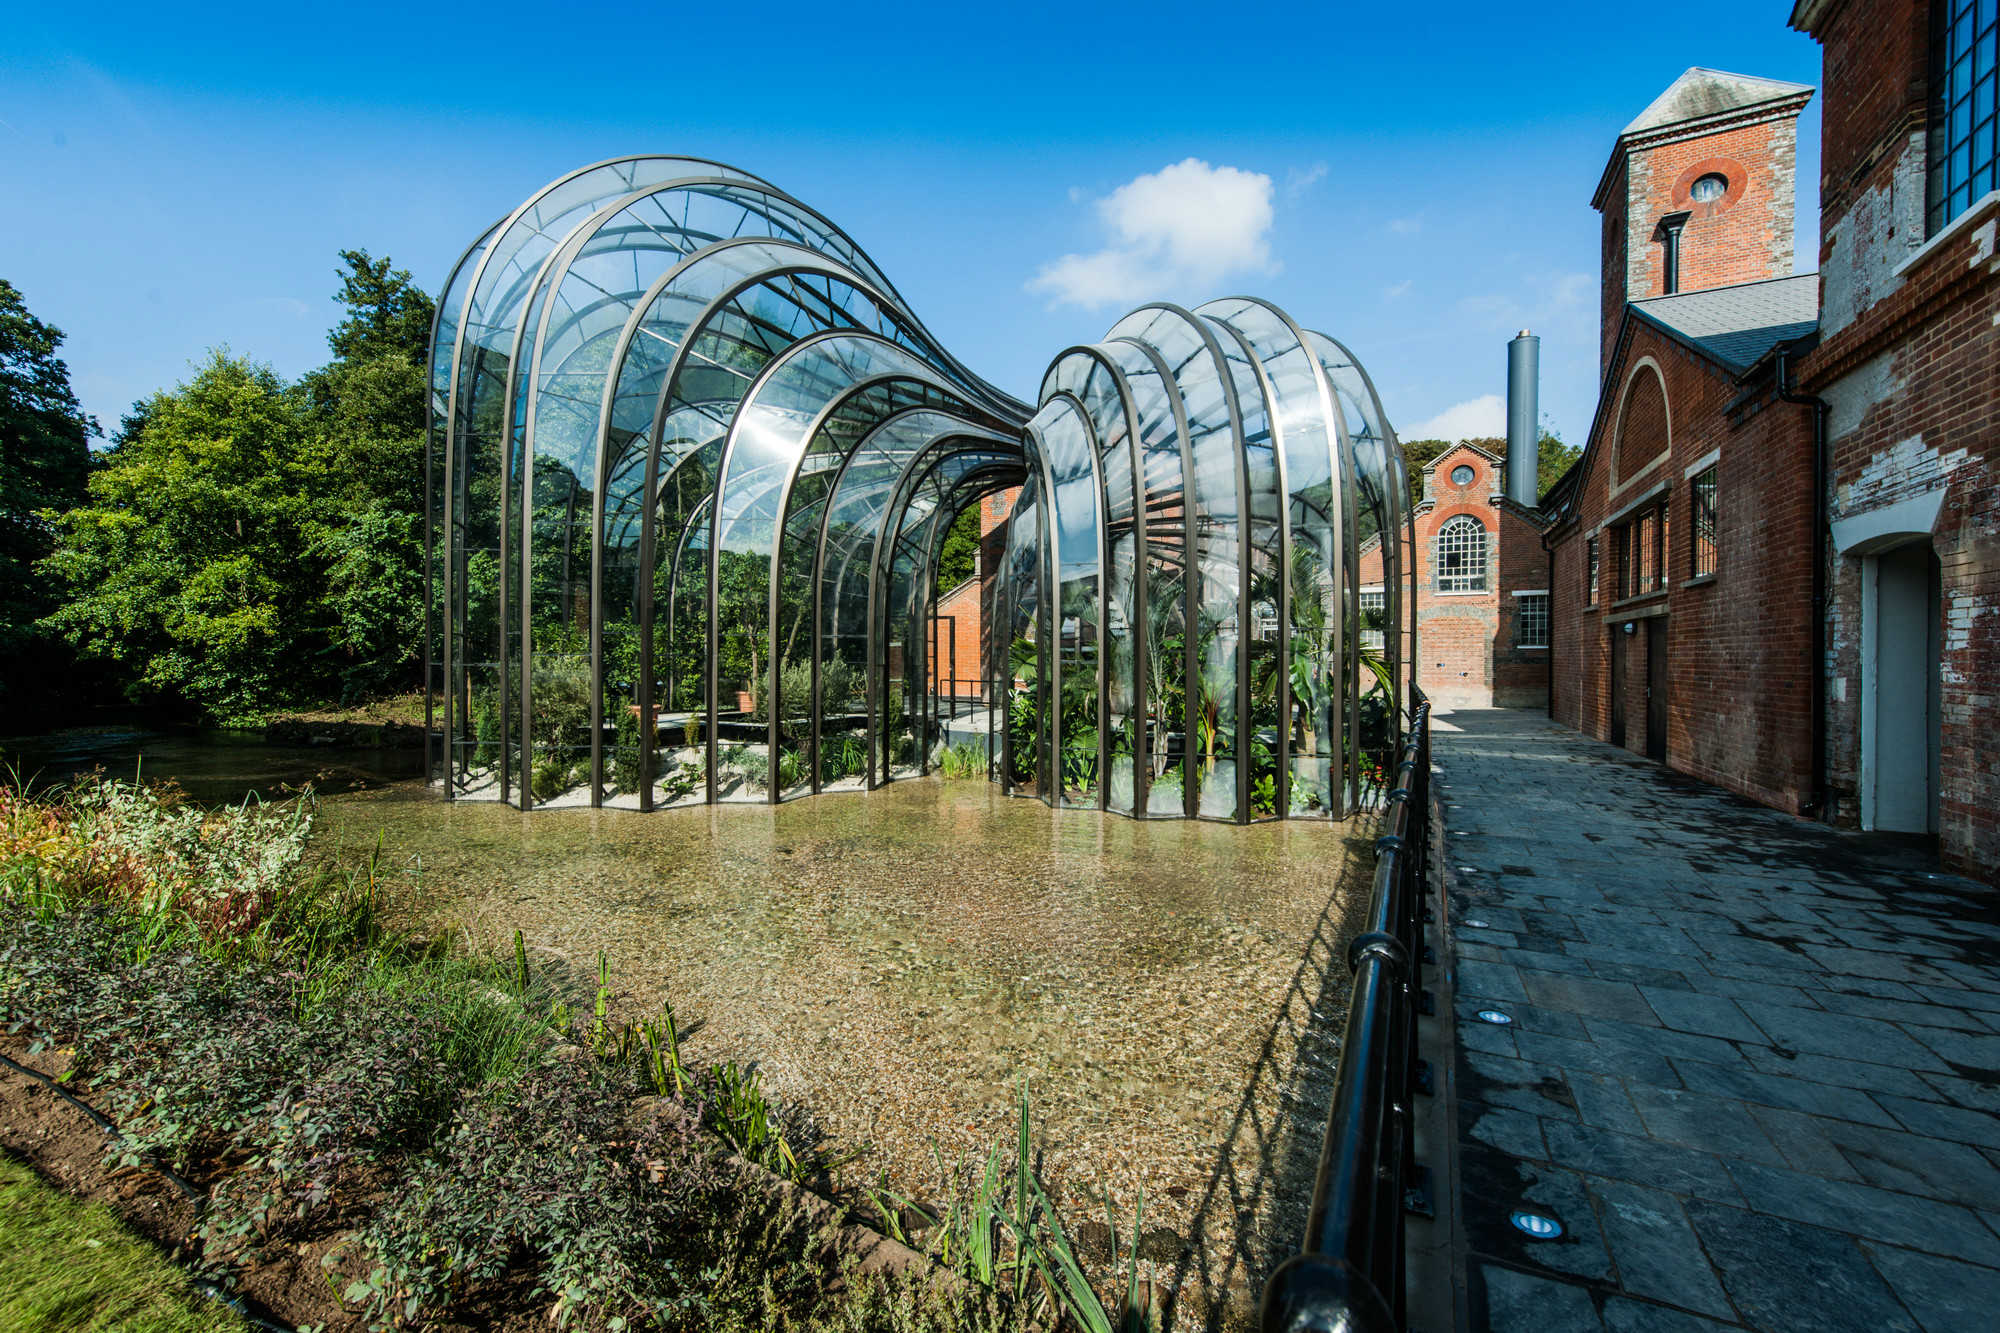 IGS Magazine-Bombay-Sapphire-Distillery-Heatherwick-Studio-Architecture-projects-5